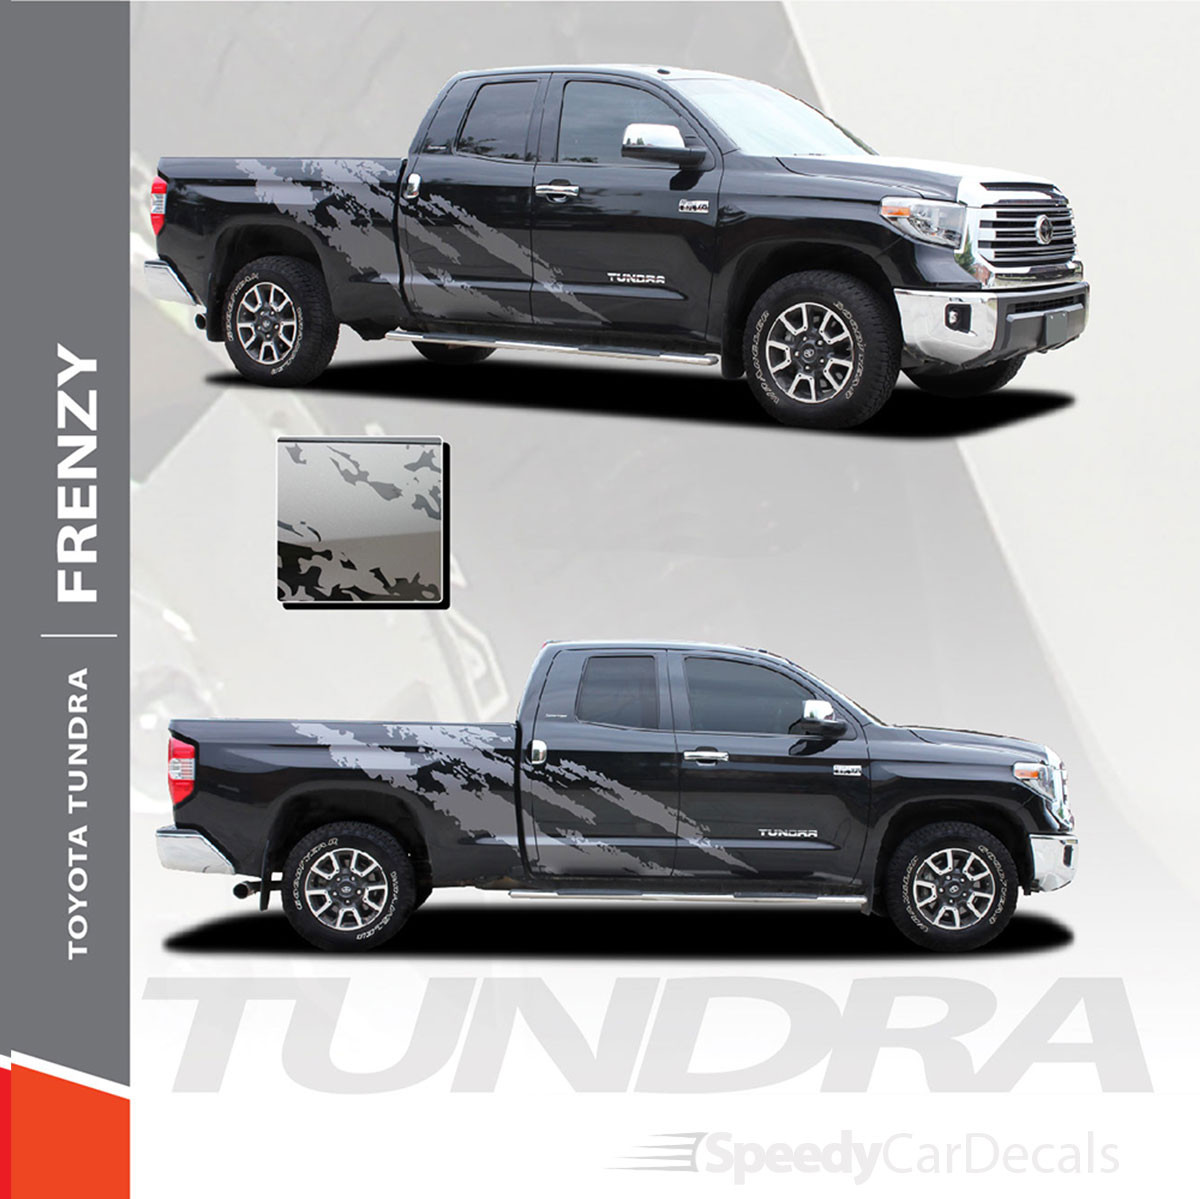 NEW! 2015-2021 Toyota Tundra Side Vinyl Graphics FRENZY